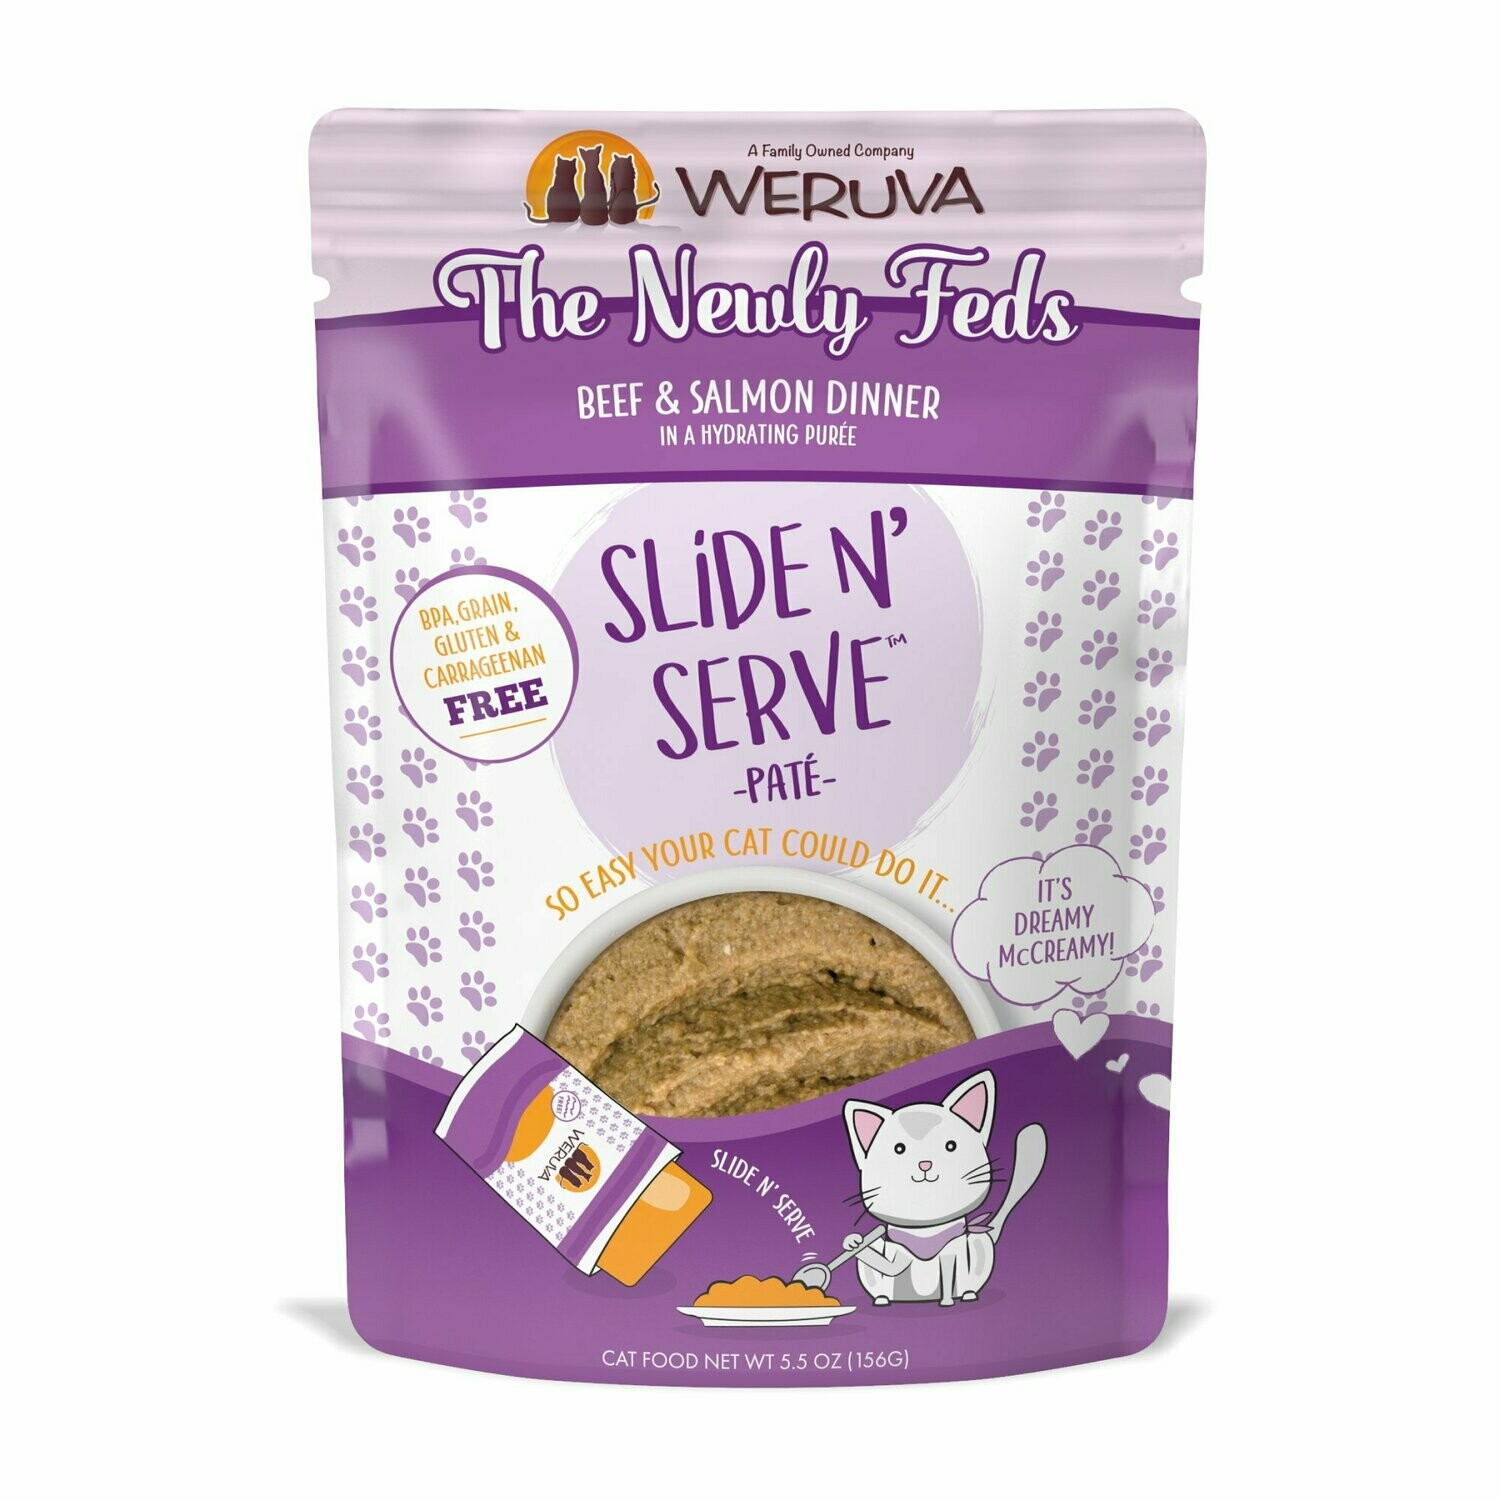 WERUVA BPA grain gluten and carageen free slide and serve pate beef and salmon dinner 12 pouches 5.5 ounces  (3/20)